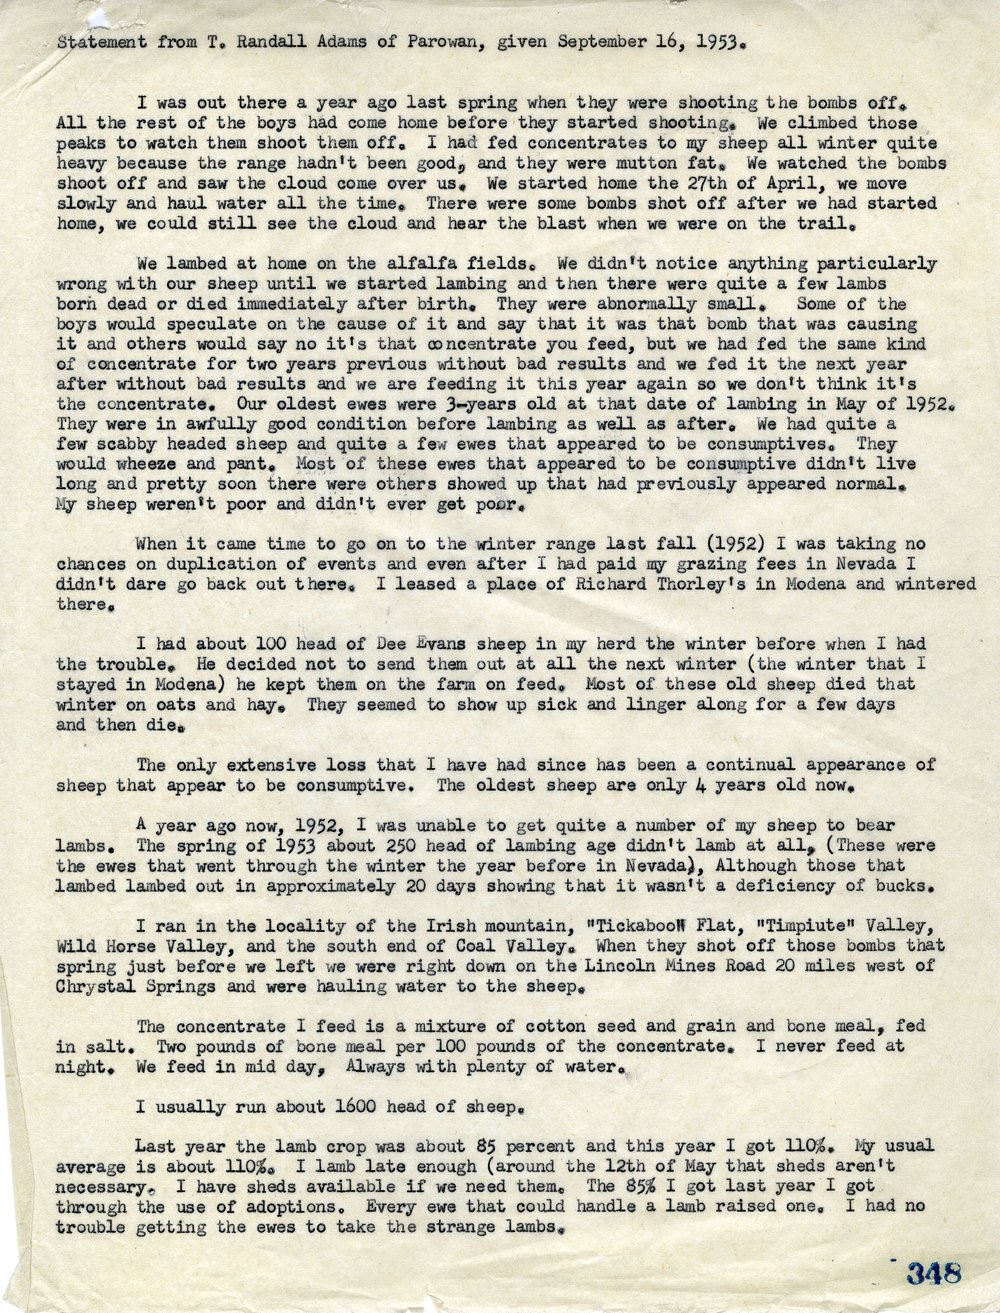 STATEMENT FROM PAROWAN SHEEP OWNER T. RANDALL ADAMS ON SHEEP LOSS- SERIES 11571 - PERMISSION OF THE UTAH STATE ARCHIVES AND RECORDS SERVICE.